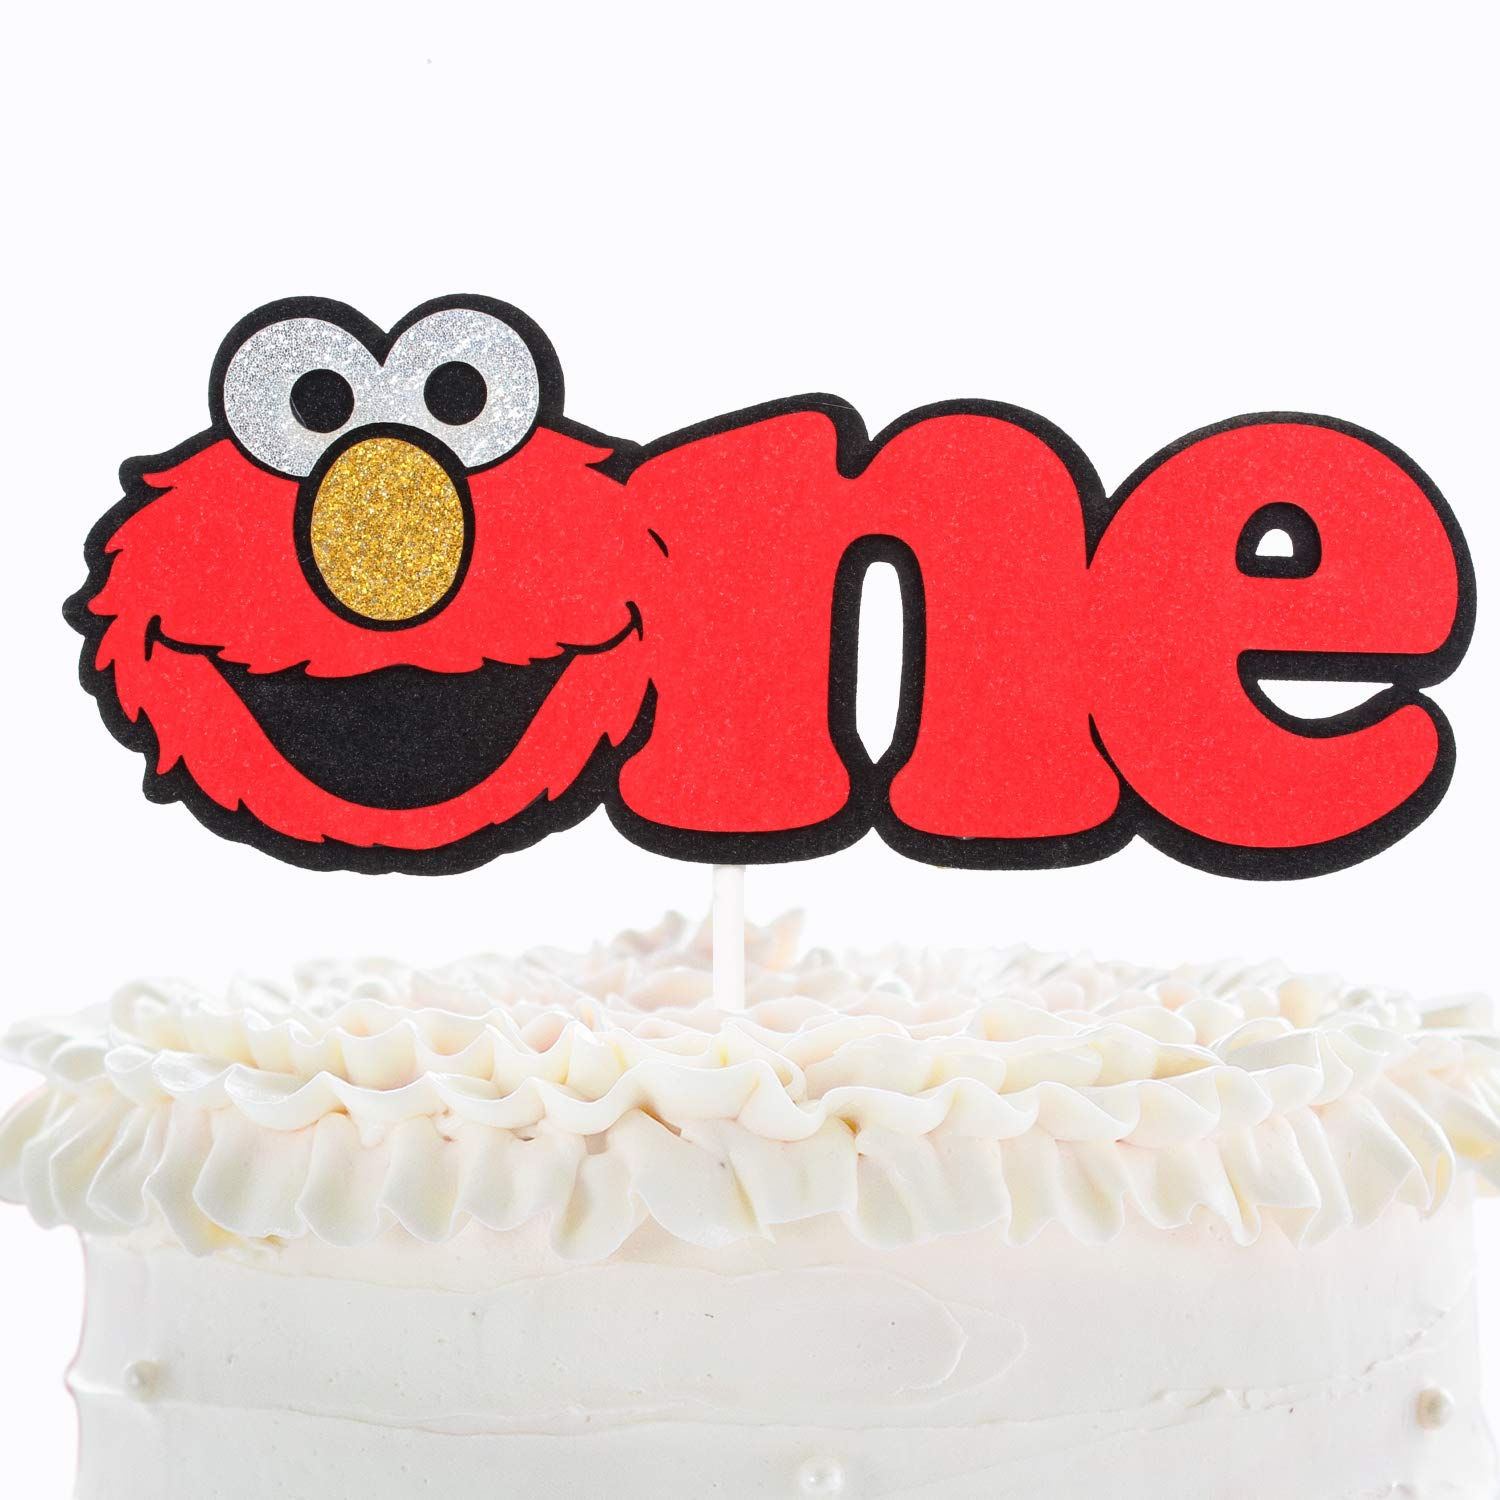 Elmo One Birthday Party Cake Topper Sesame Street Elmo Glitter Baby S 1st Birthday Cake Decor Novelty Wild One Year Old Baby Shower Decoration